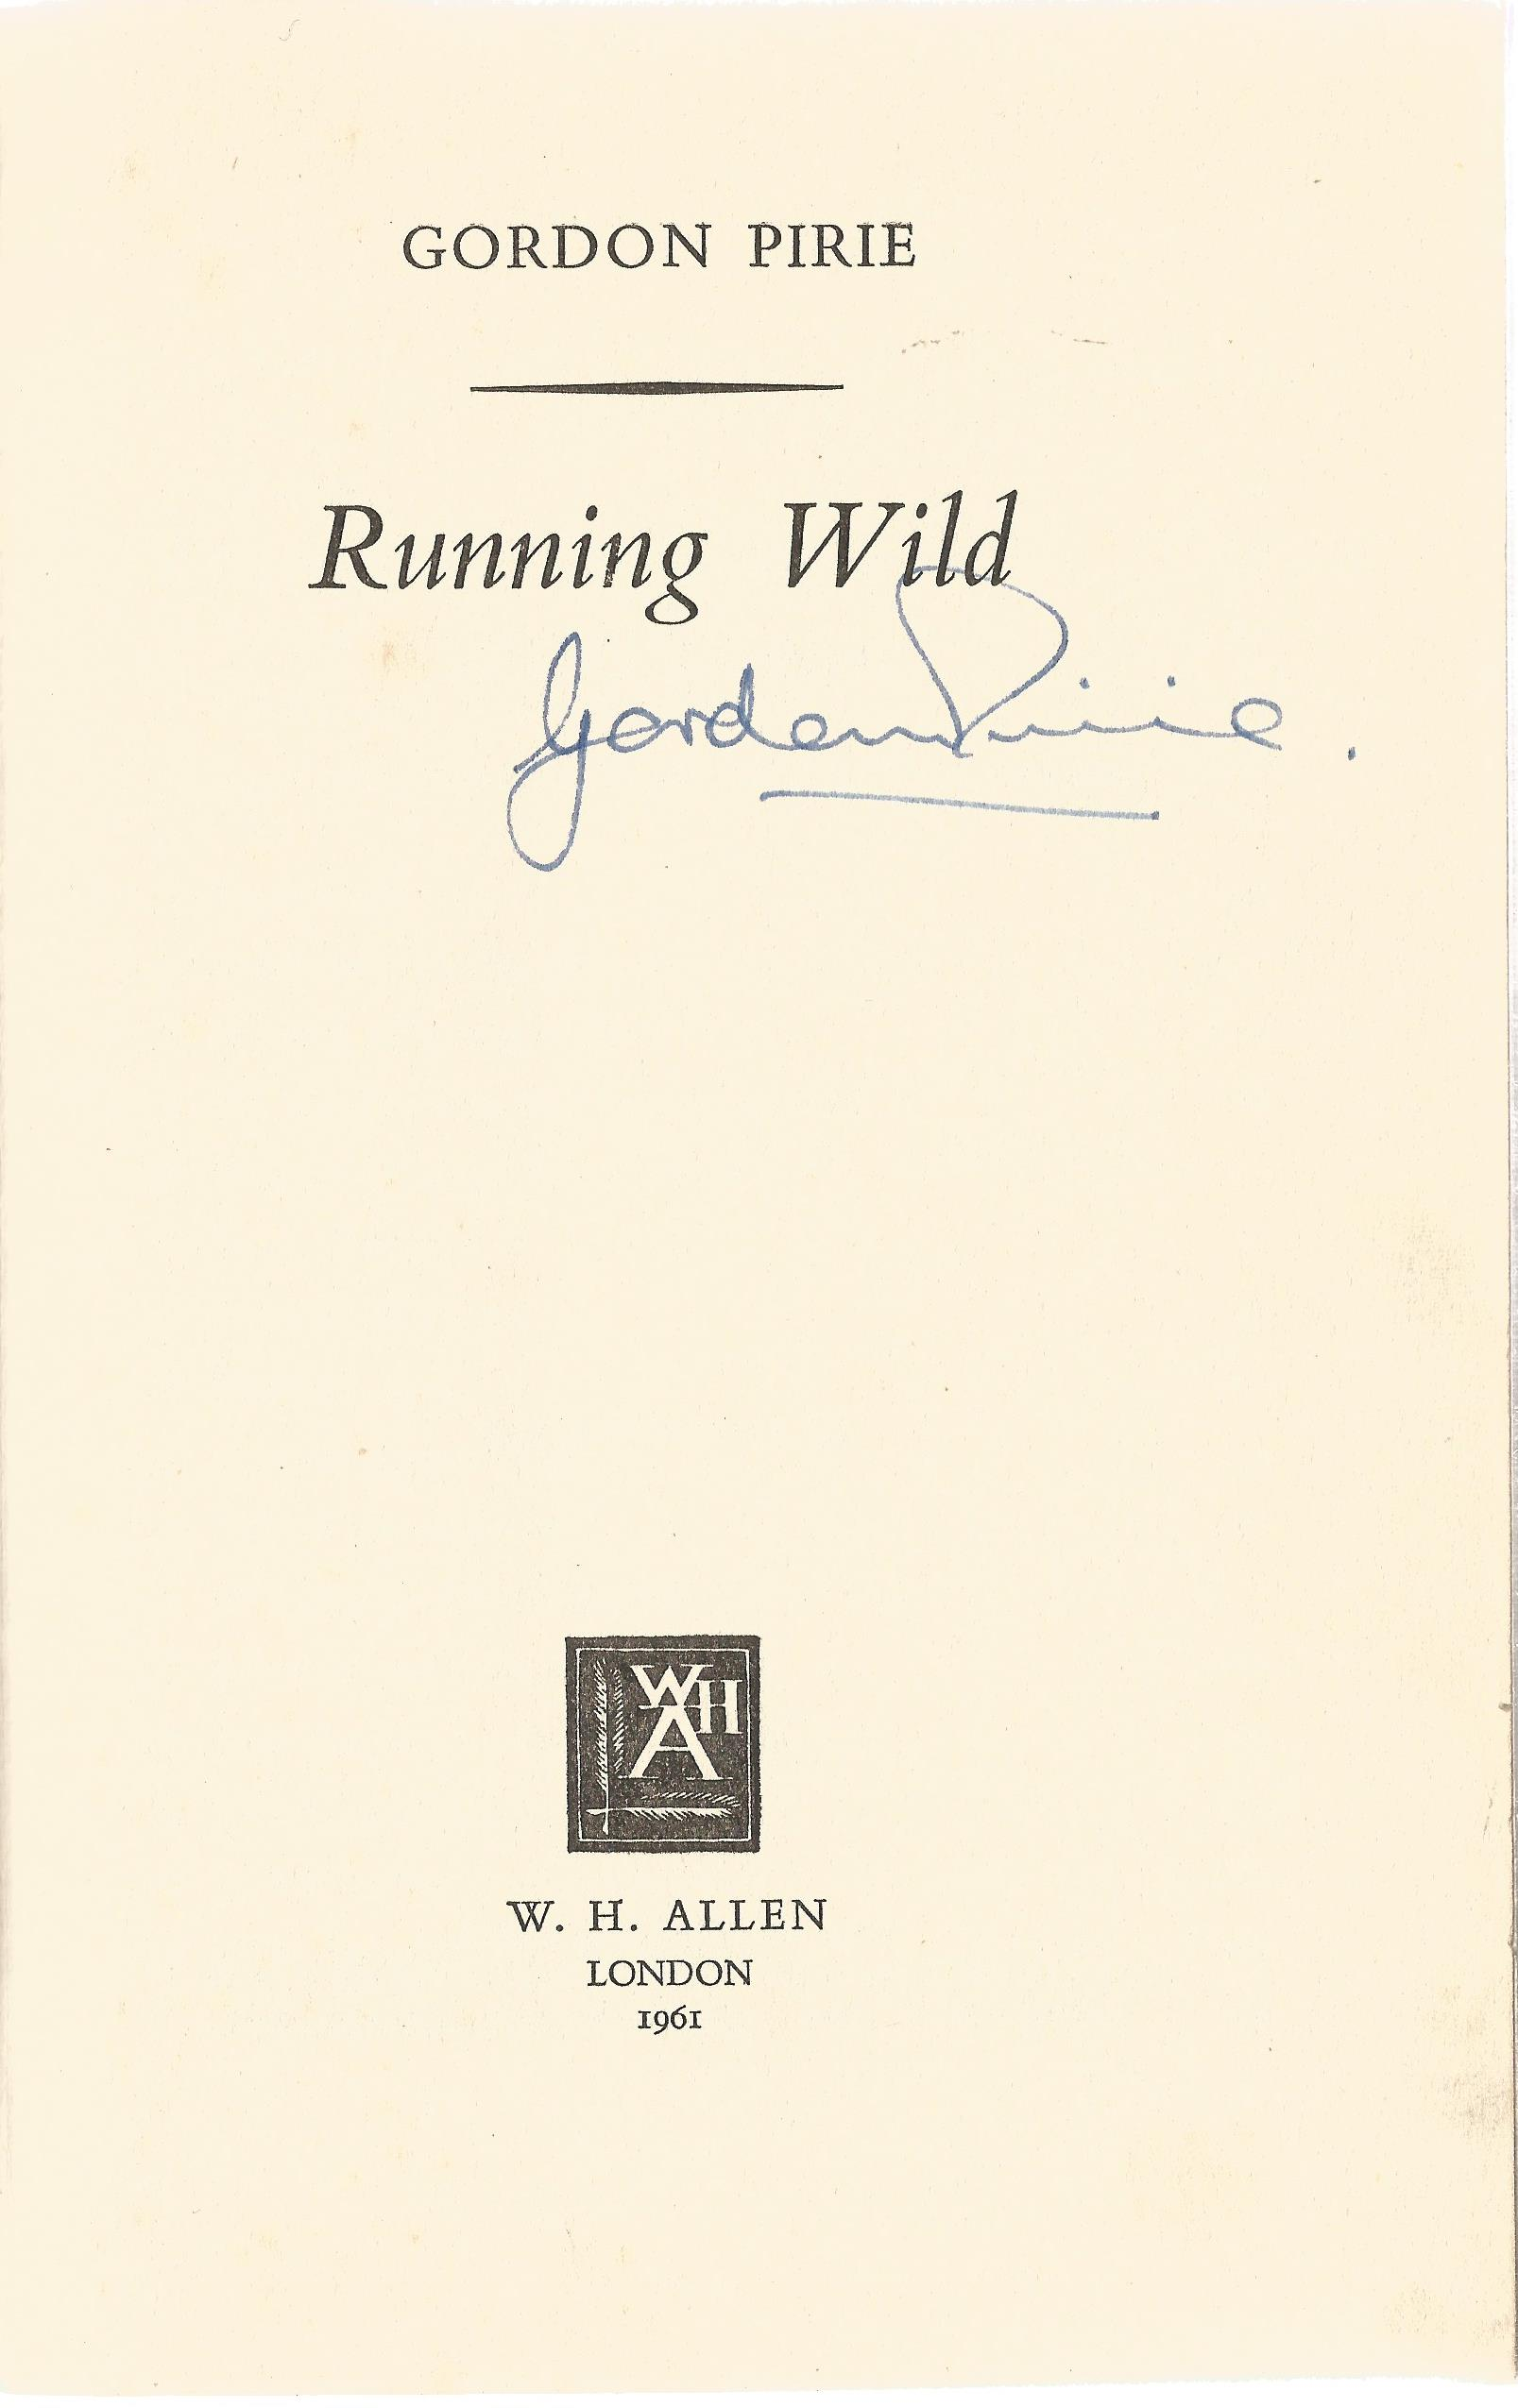 Gordon Pirie Hardback Book Running Wild His own Story 1961 signed by the Author on the Title Page - Image 2 of 2